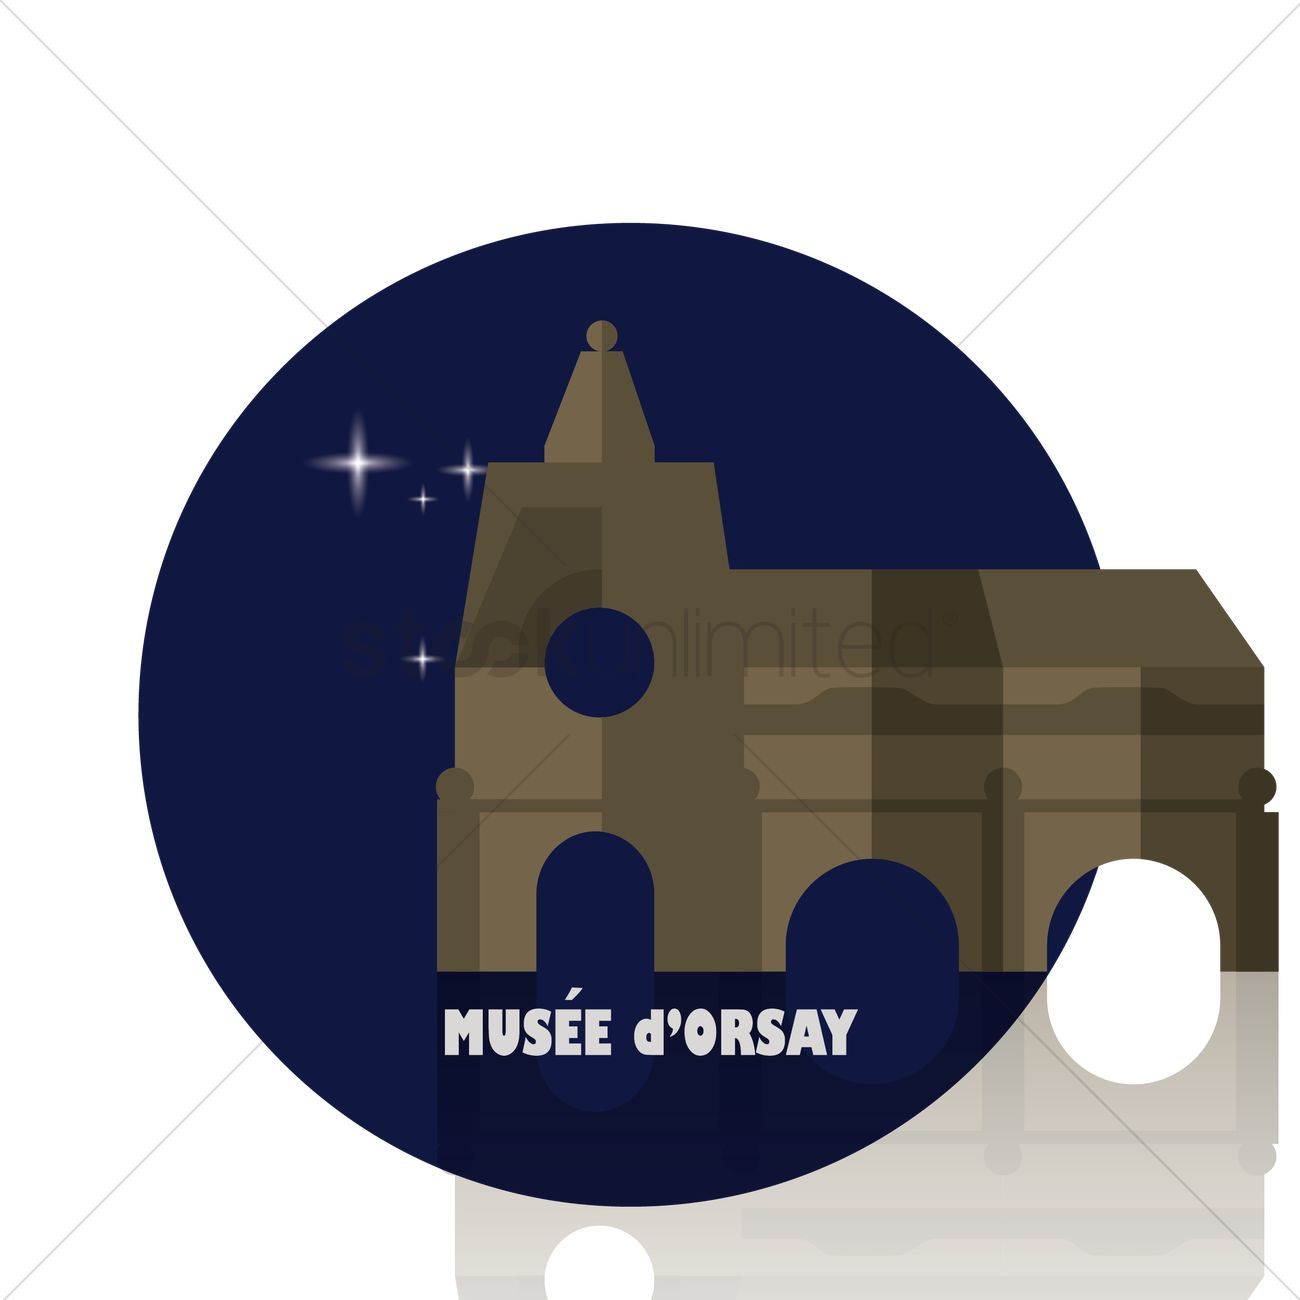 Musee d'orsay Vector Image.